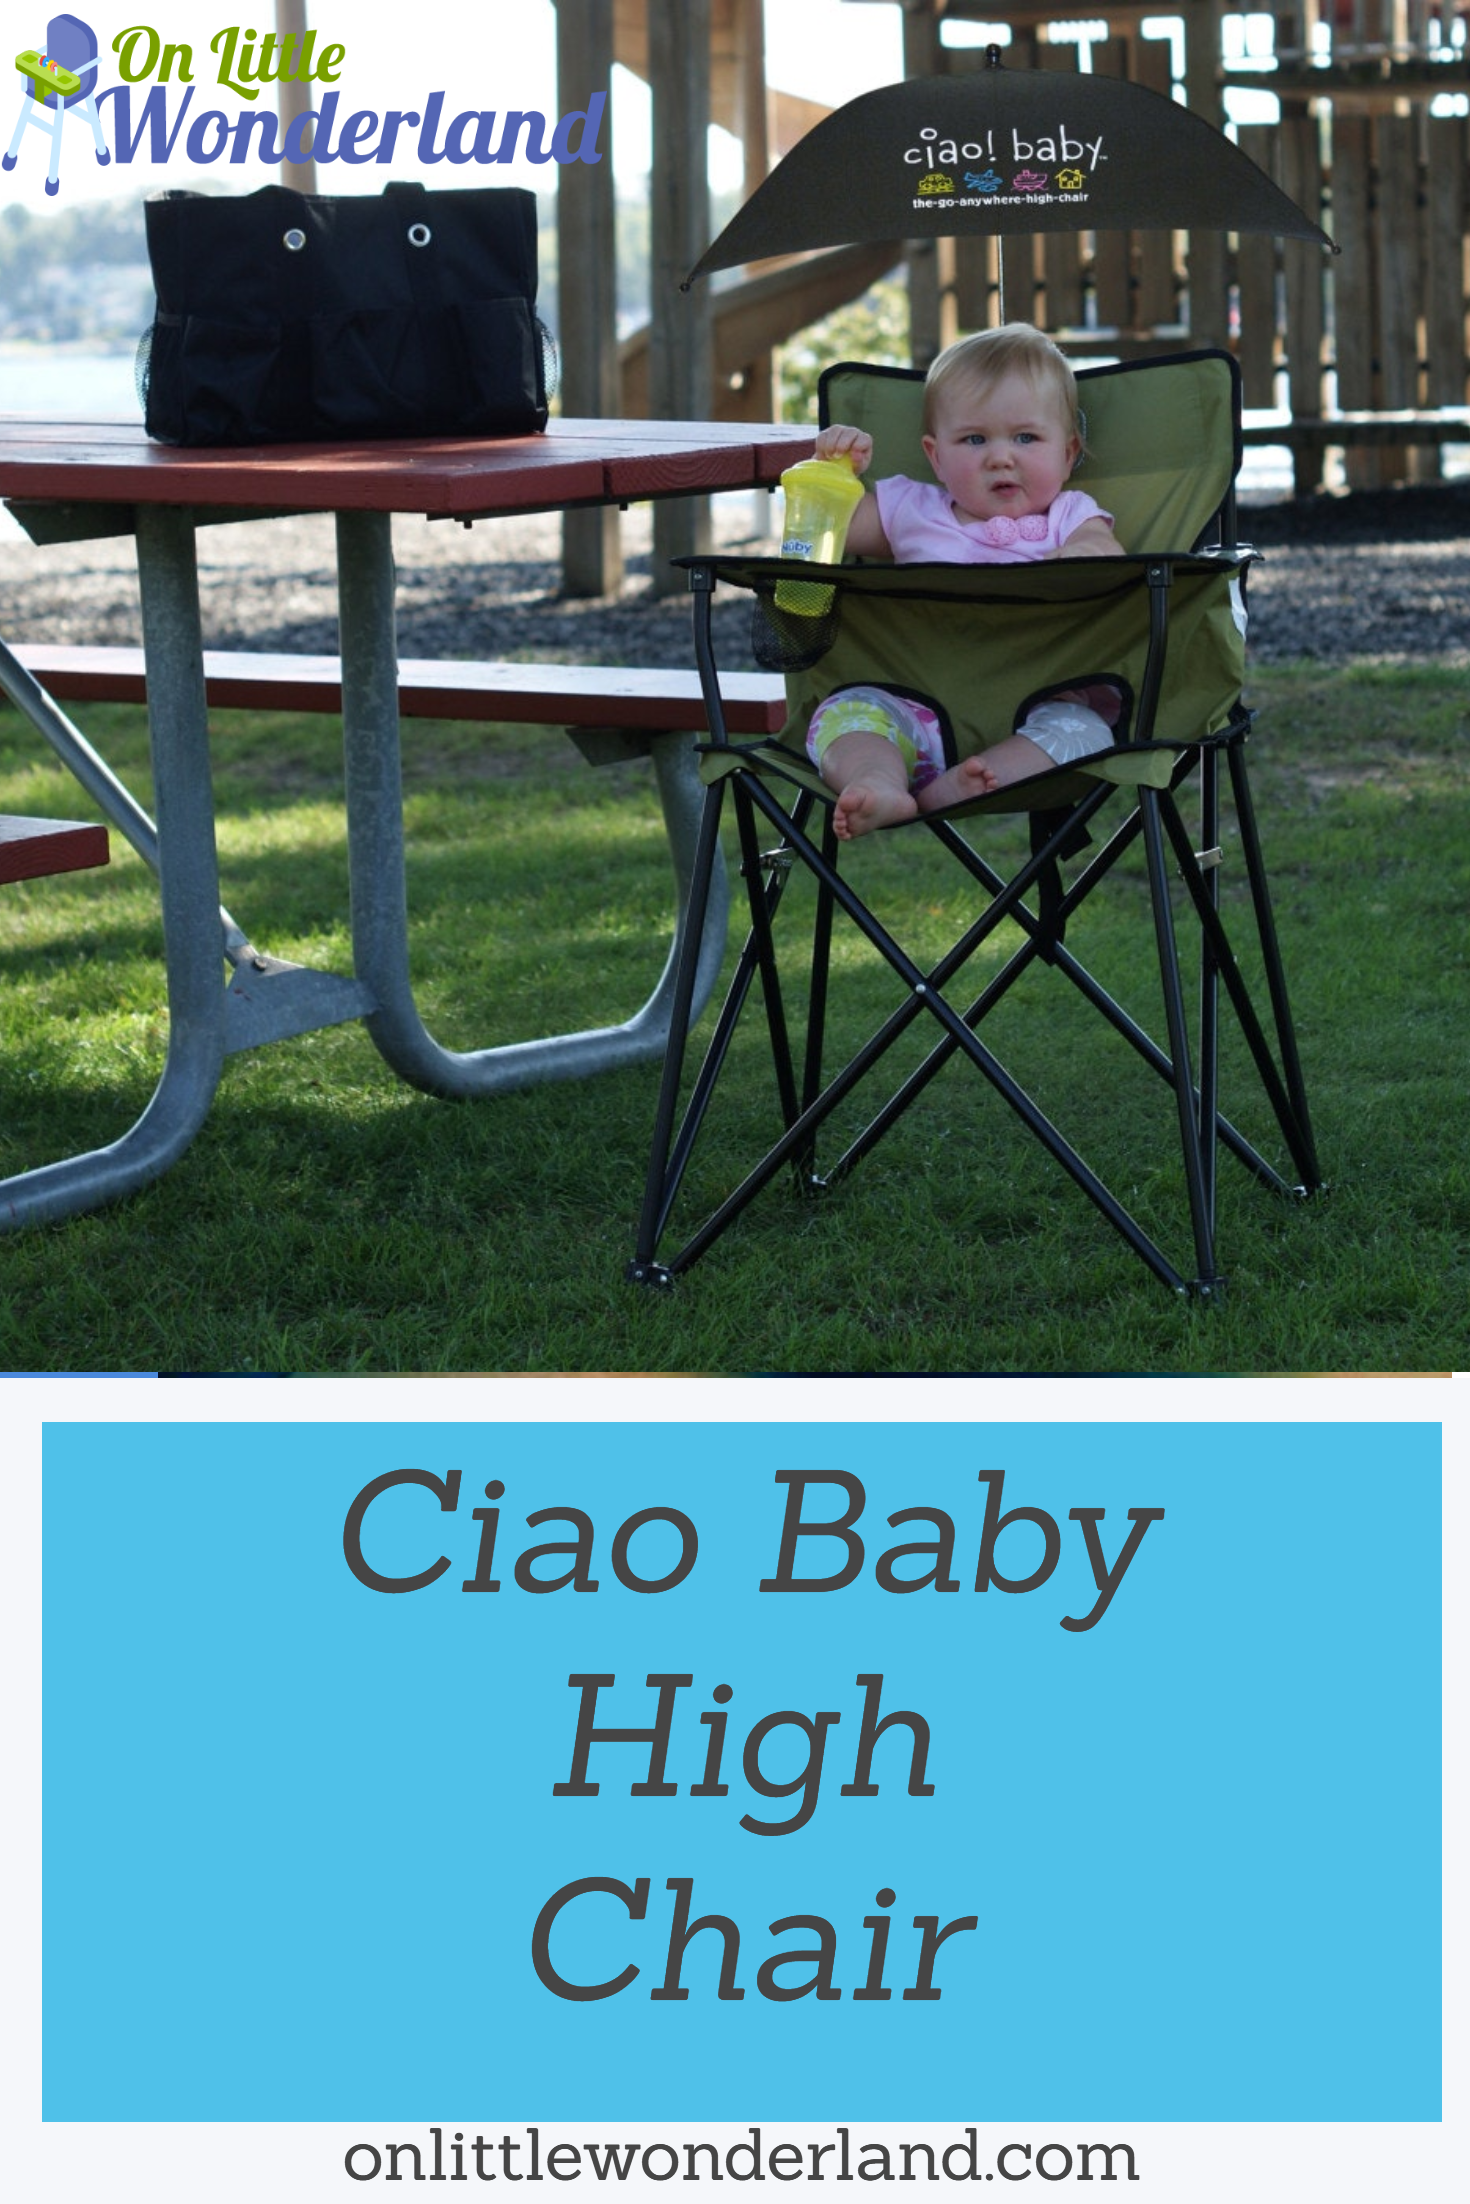 Best Baby High Chair For Small Spaces Of 2018 Complete Reviews With Comparison Chart Baby High Chair Best Baby High Chair Chairs For Small Spaces